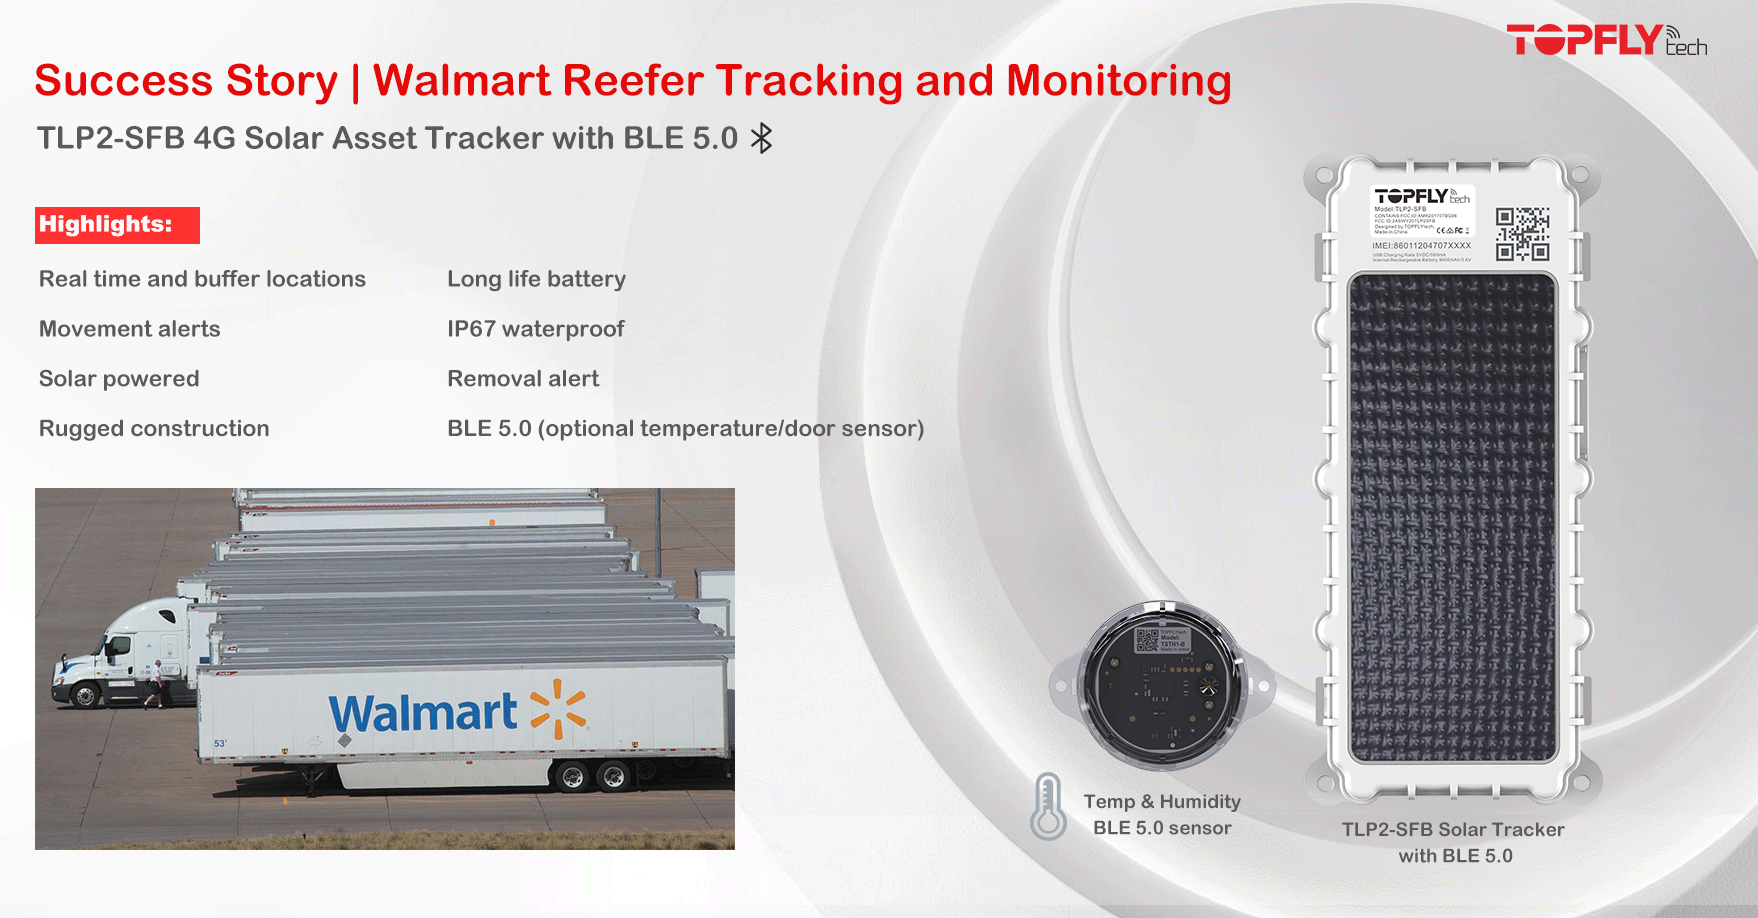 Success Story | Walmart Reefer Cold Chain Monitoring